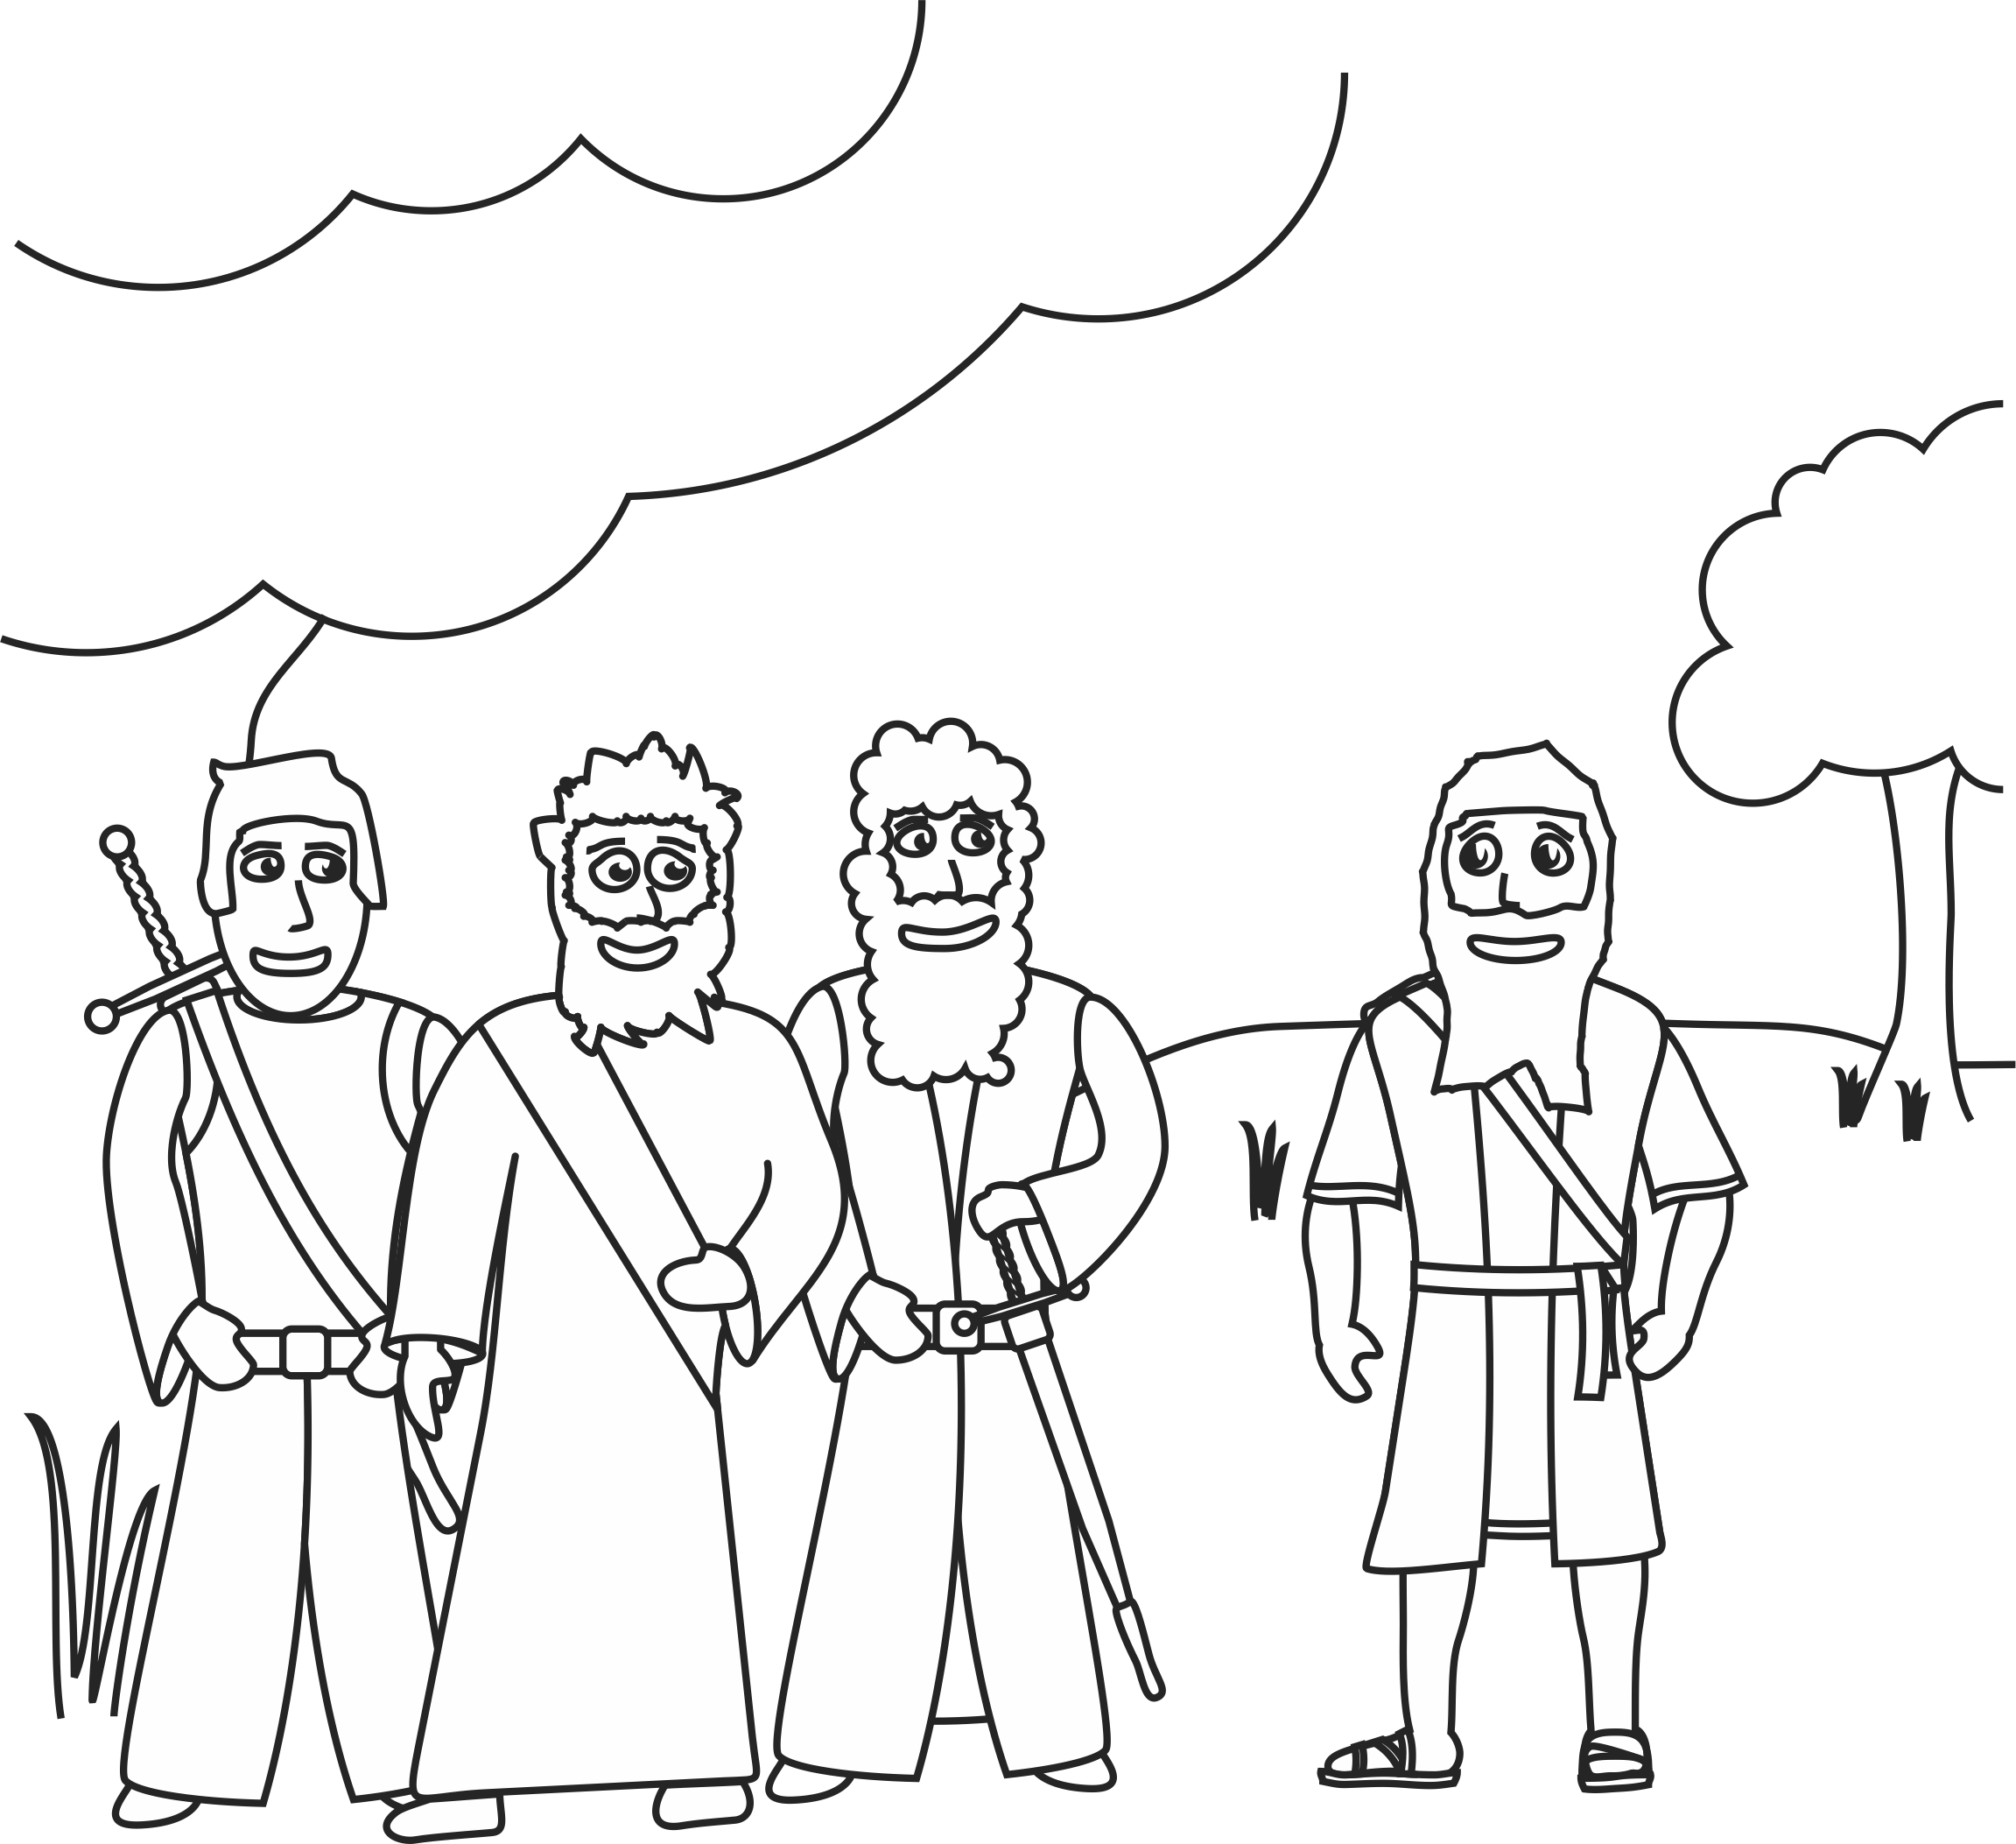 zechariah visions coloring pages - photo#8